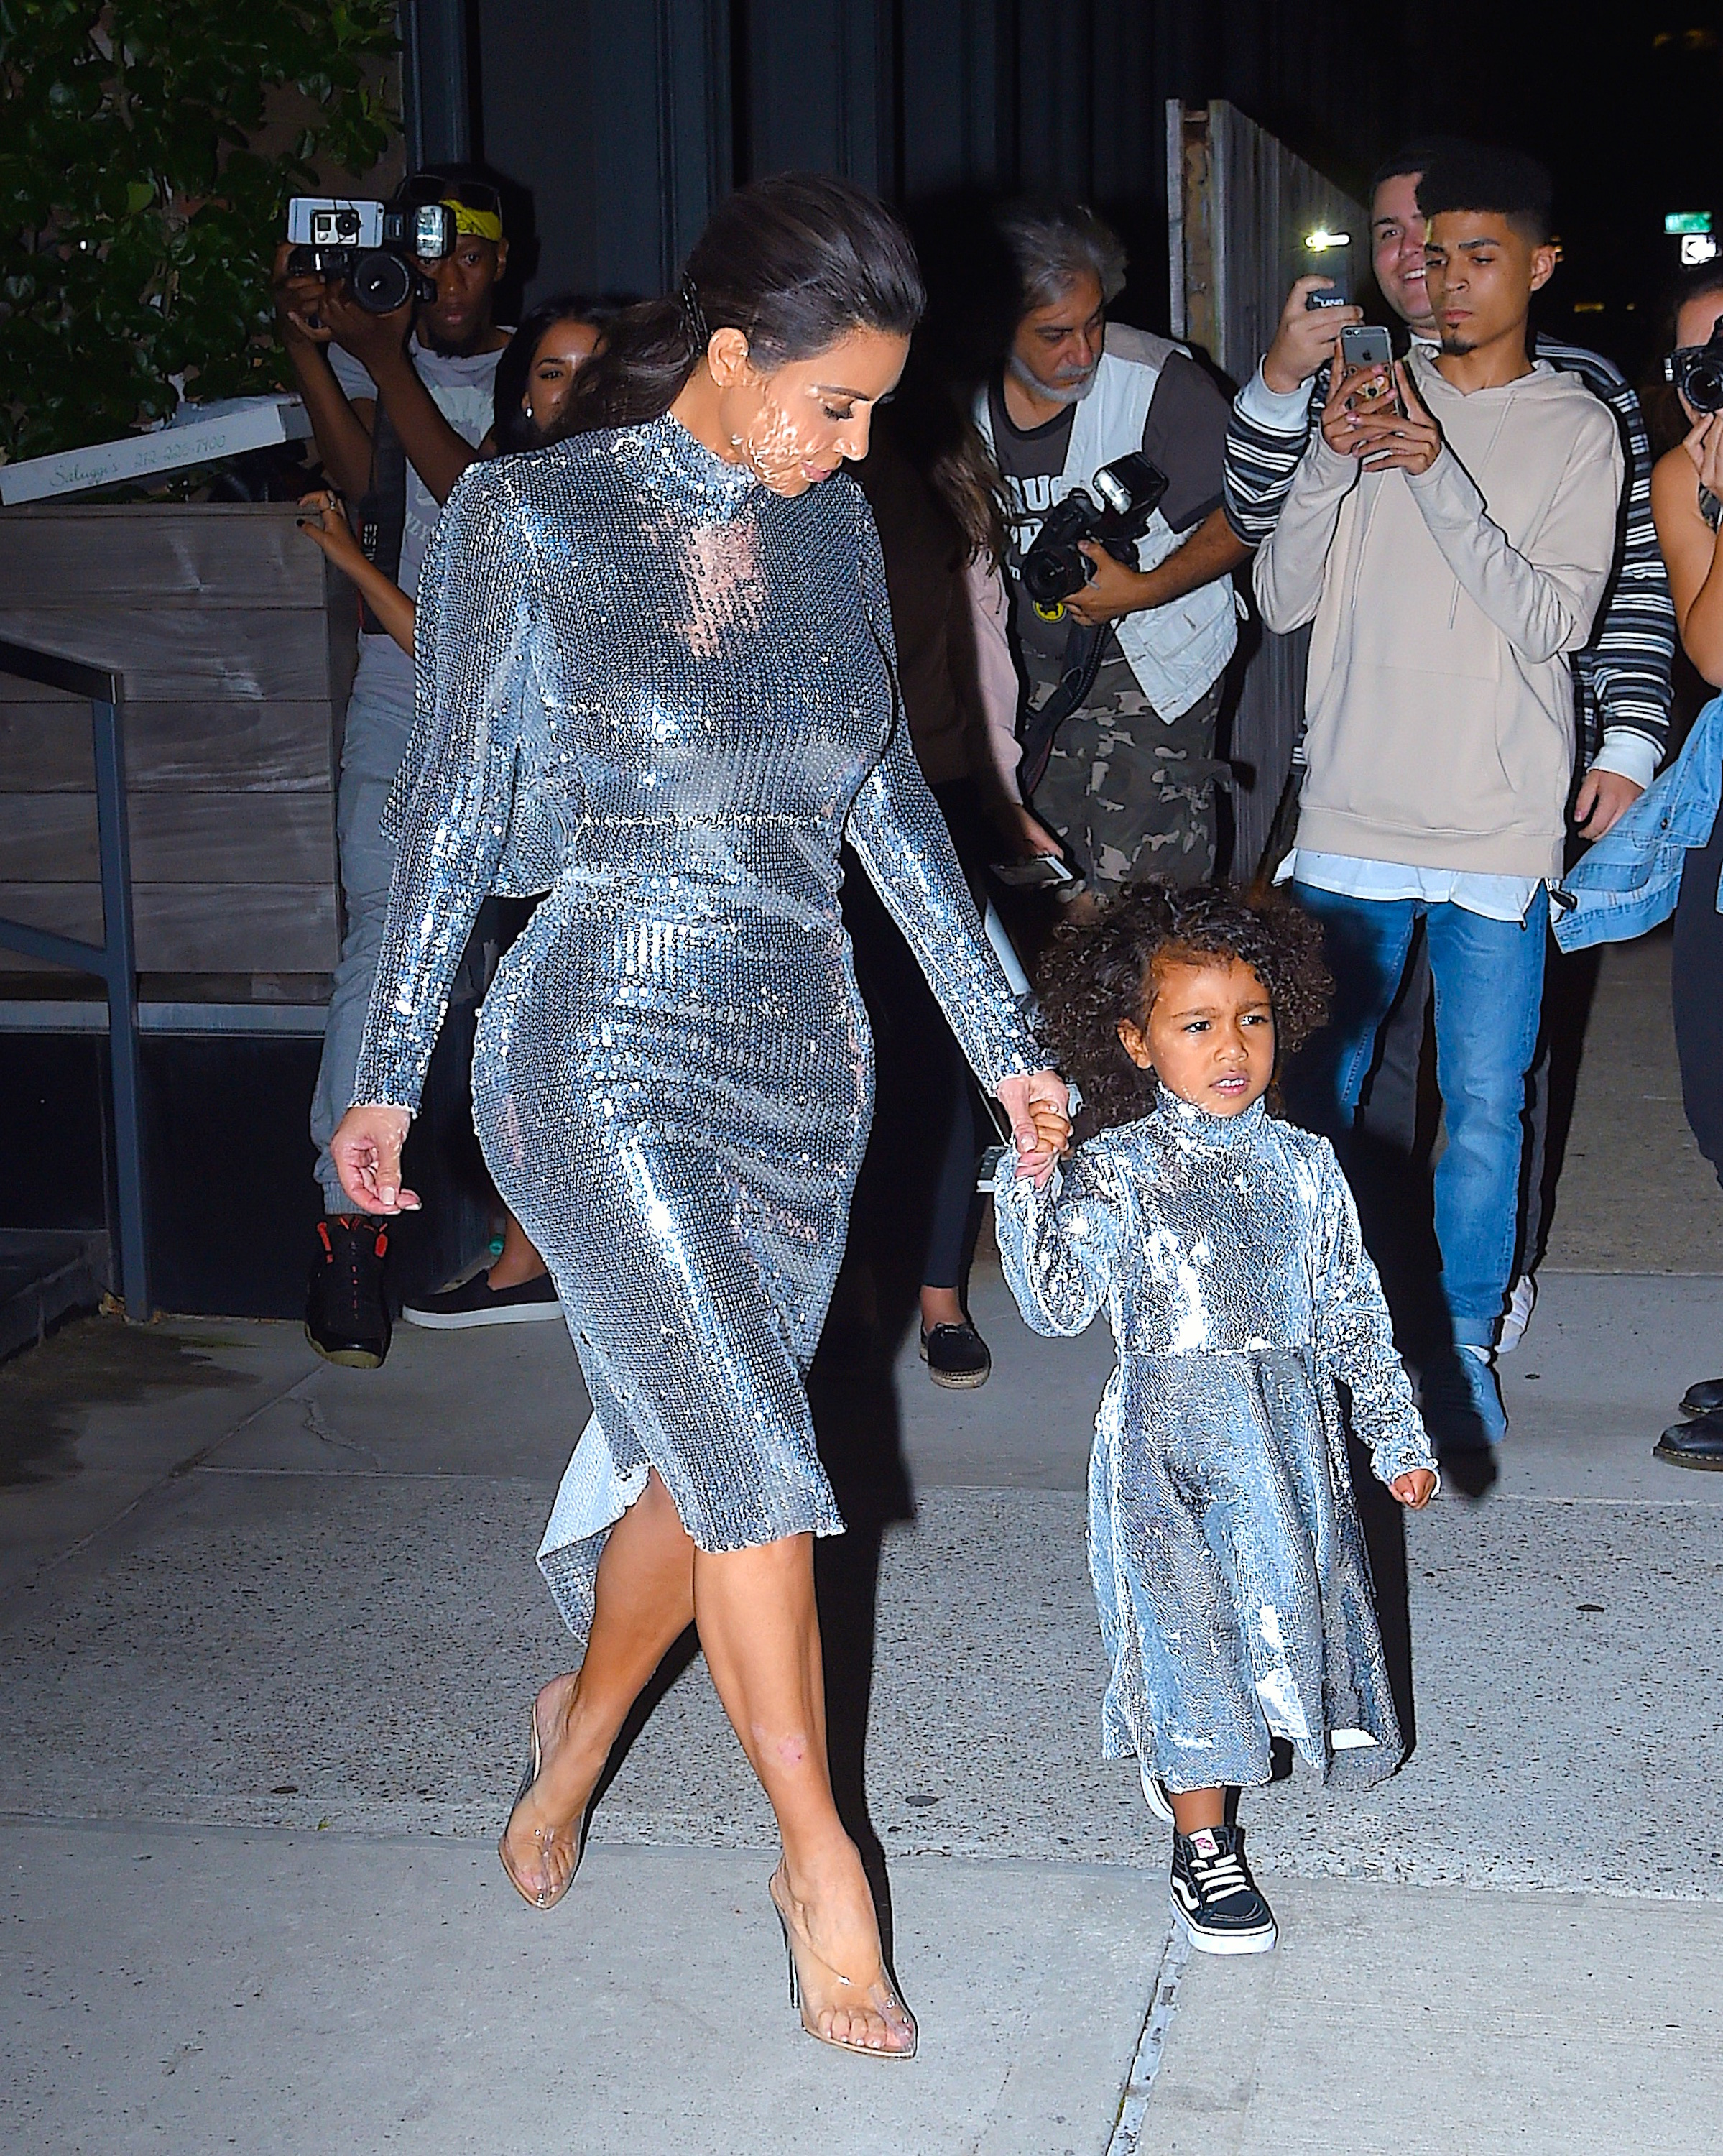 NEW YORK, NY - SEPTEMBER 05: Kim Kardashian and North West seen in Manhattan on September 5, 2016 in New York City. (Photo by Robert Kamau/GC Images)